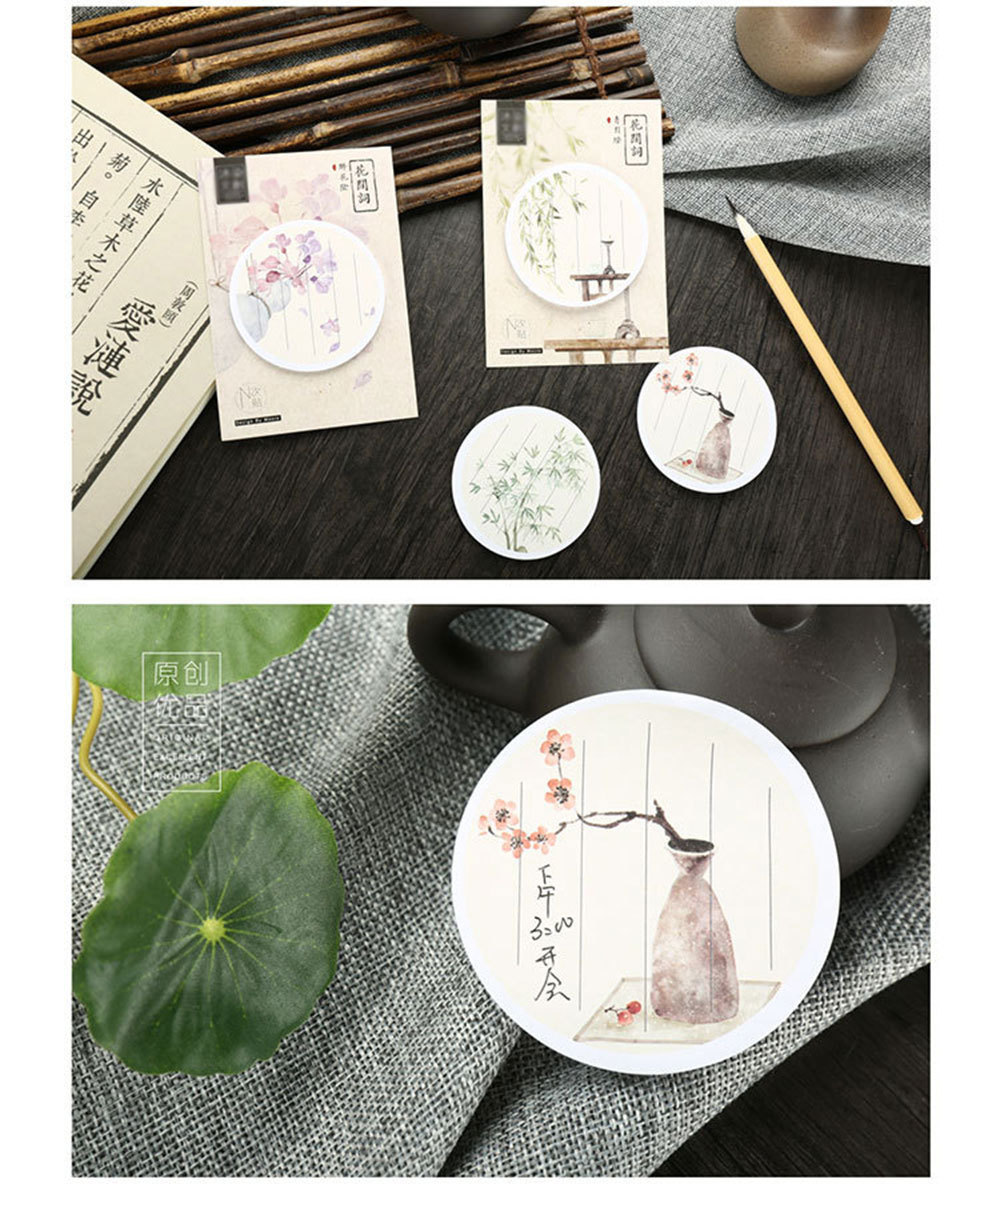 10  four pcs/lot Classical Chinese language fashion memo pad paper sticky notes submit notepad stationery papeleria faculty provides children reward HTB1JMLceMb